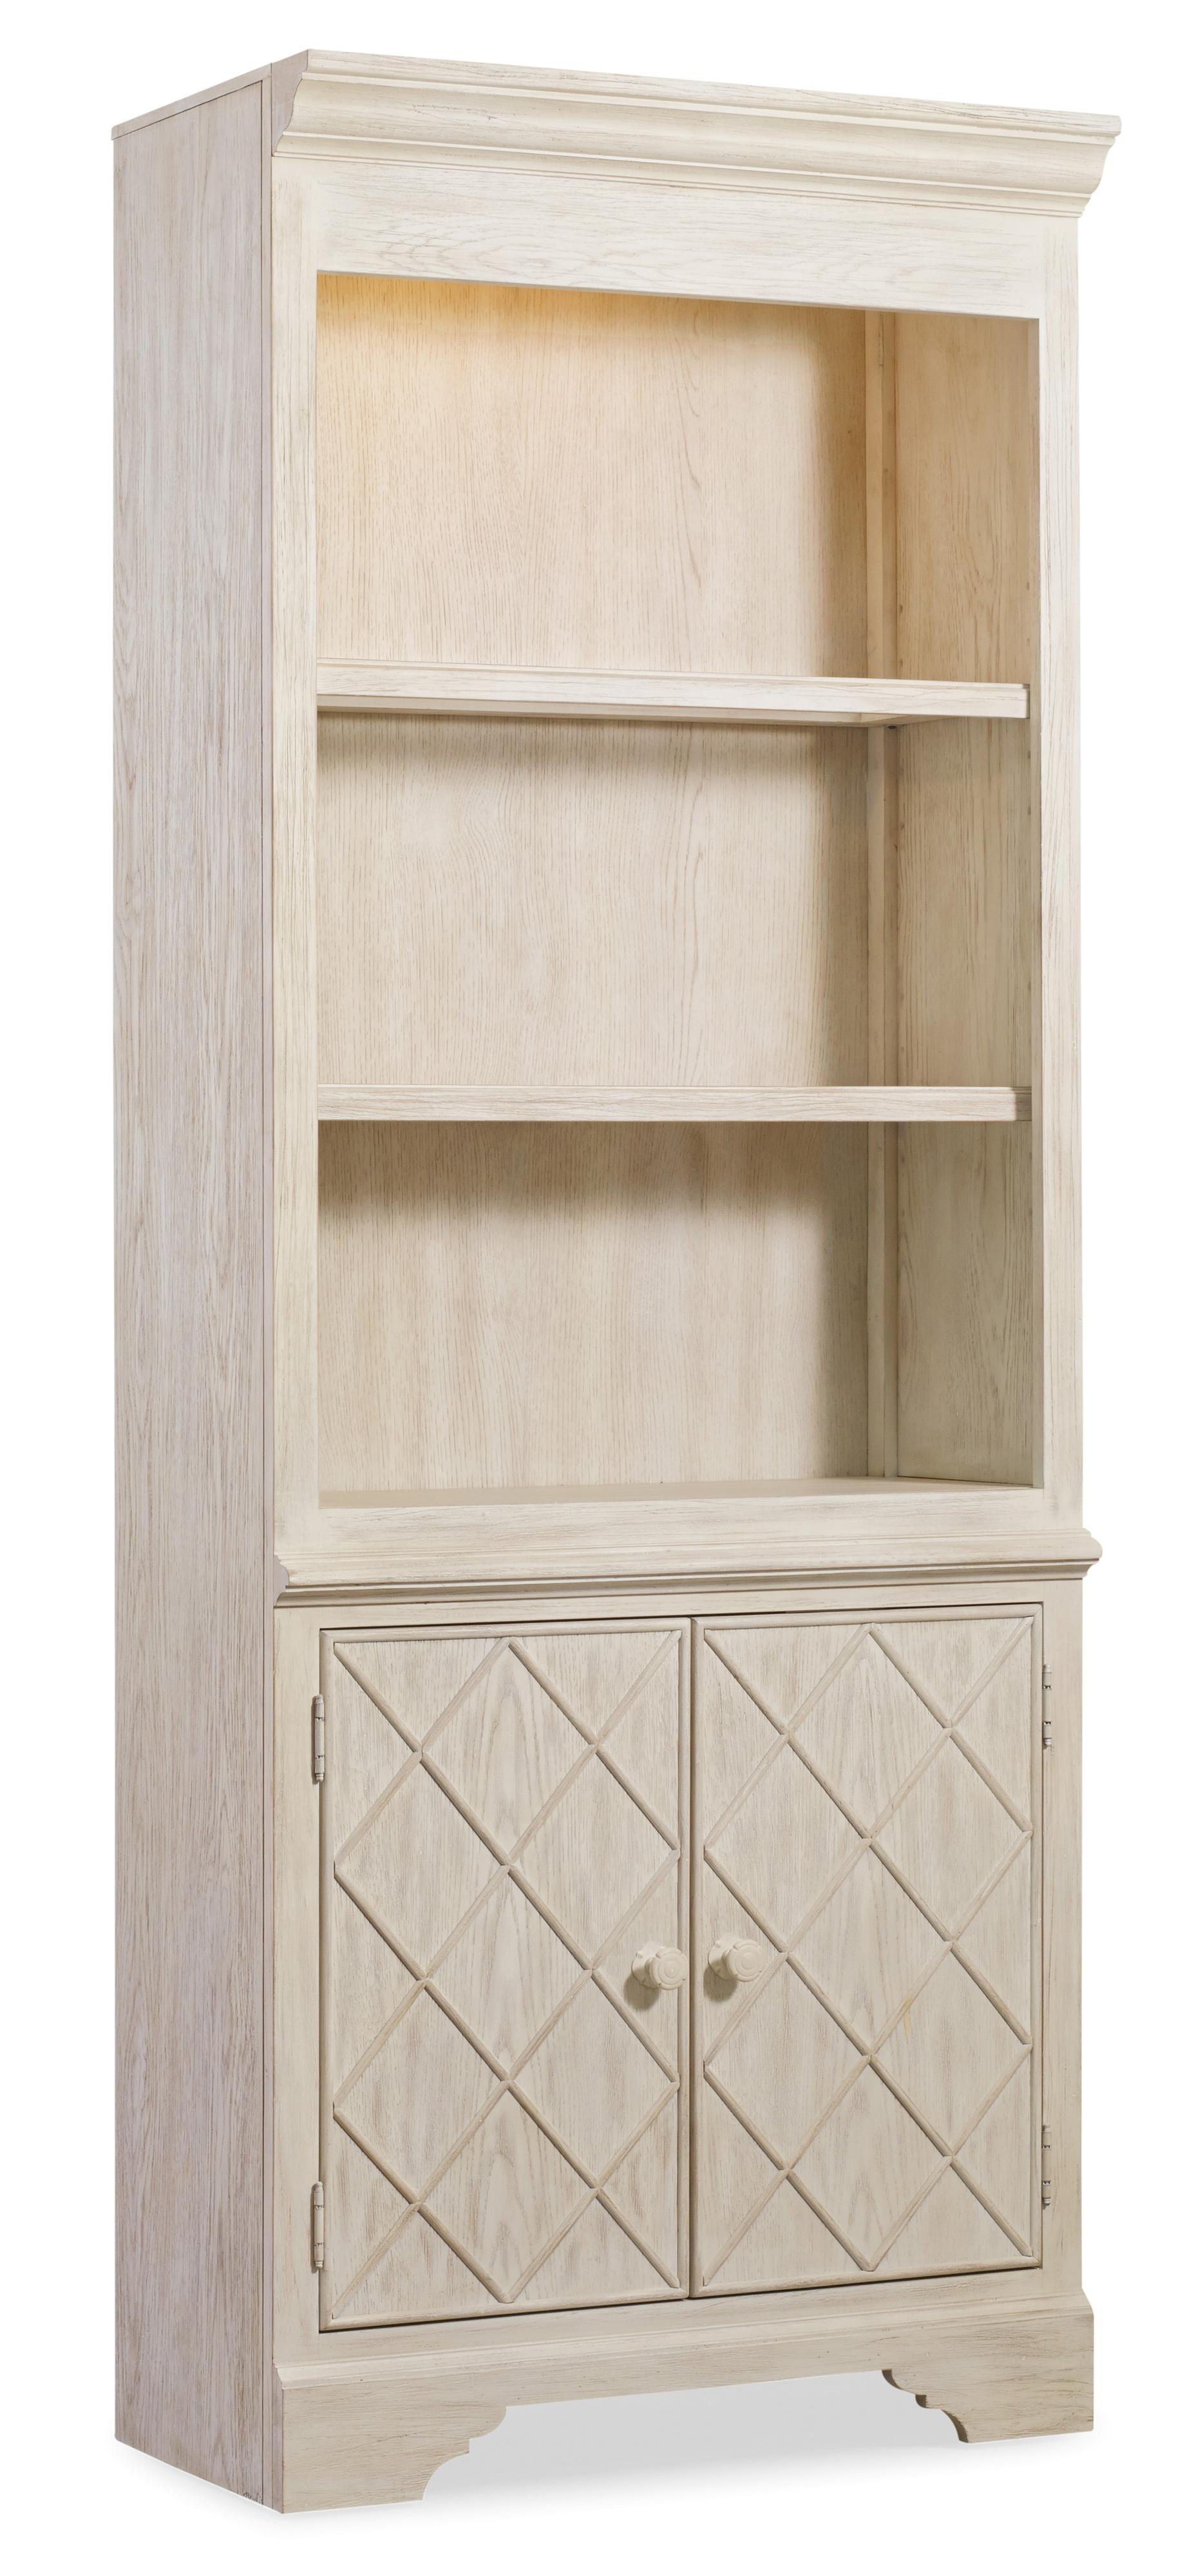 bookcase kids aw baby white silo bookcases oxford heirloom side bc furniture lex cottage nursery lexington